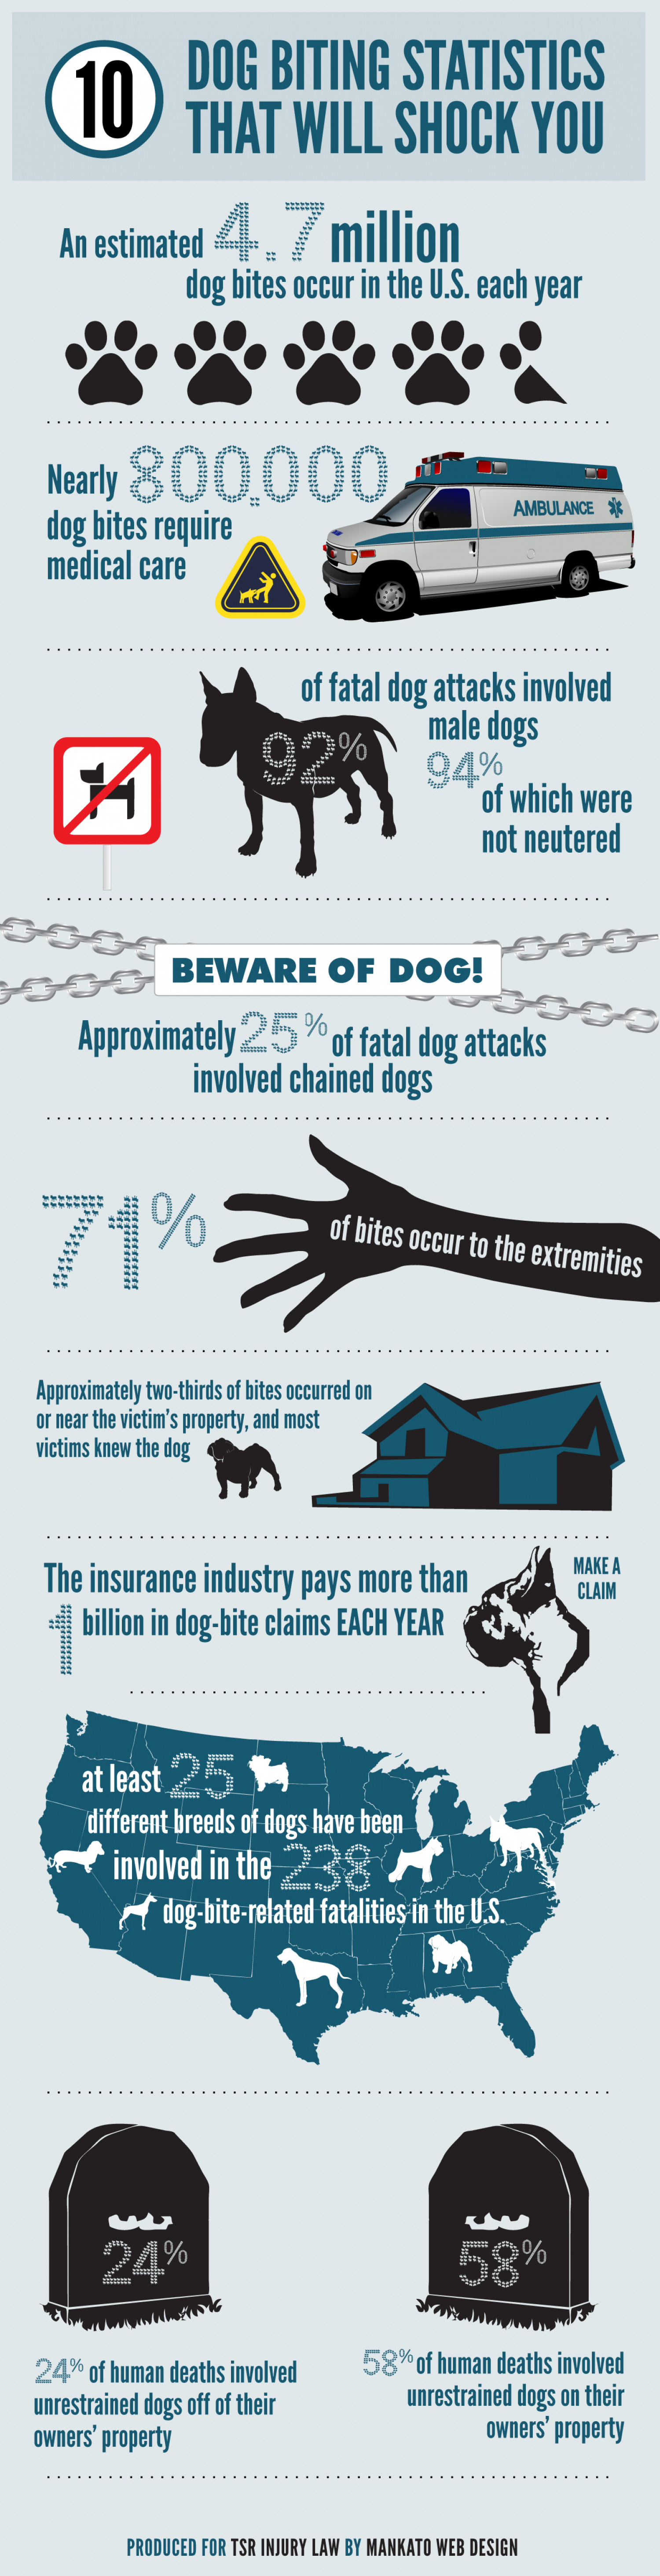 10 Dog Biting Statistics That Will Shock You Infographic